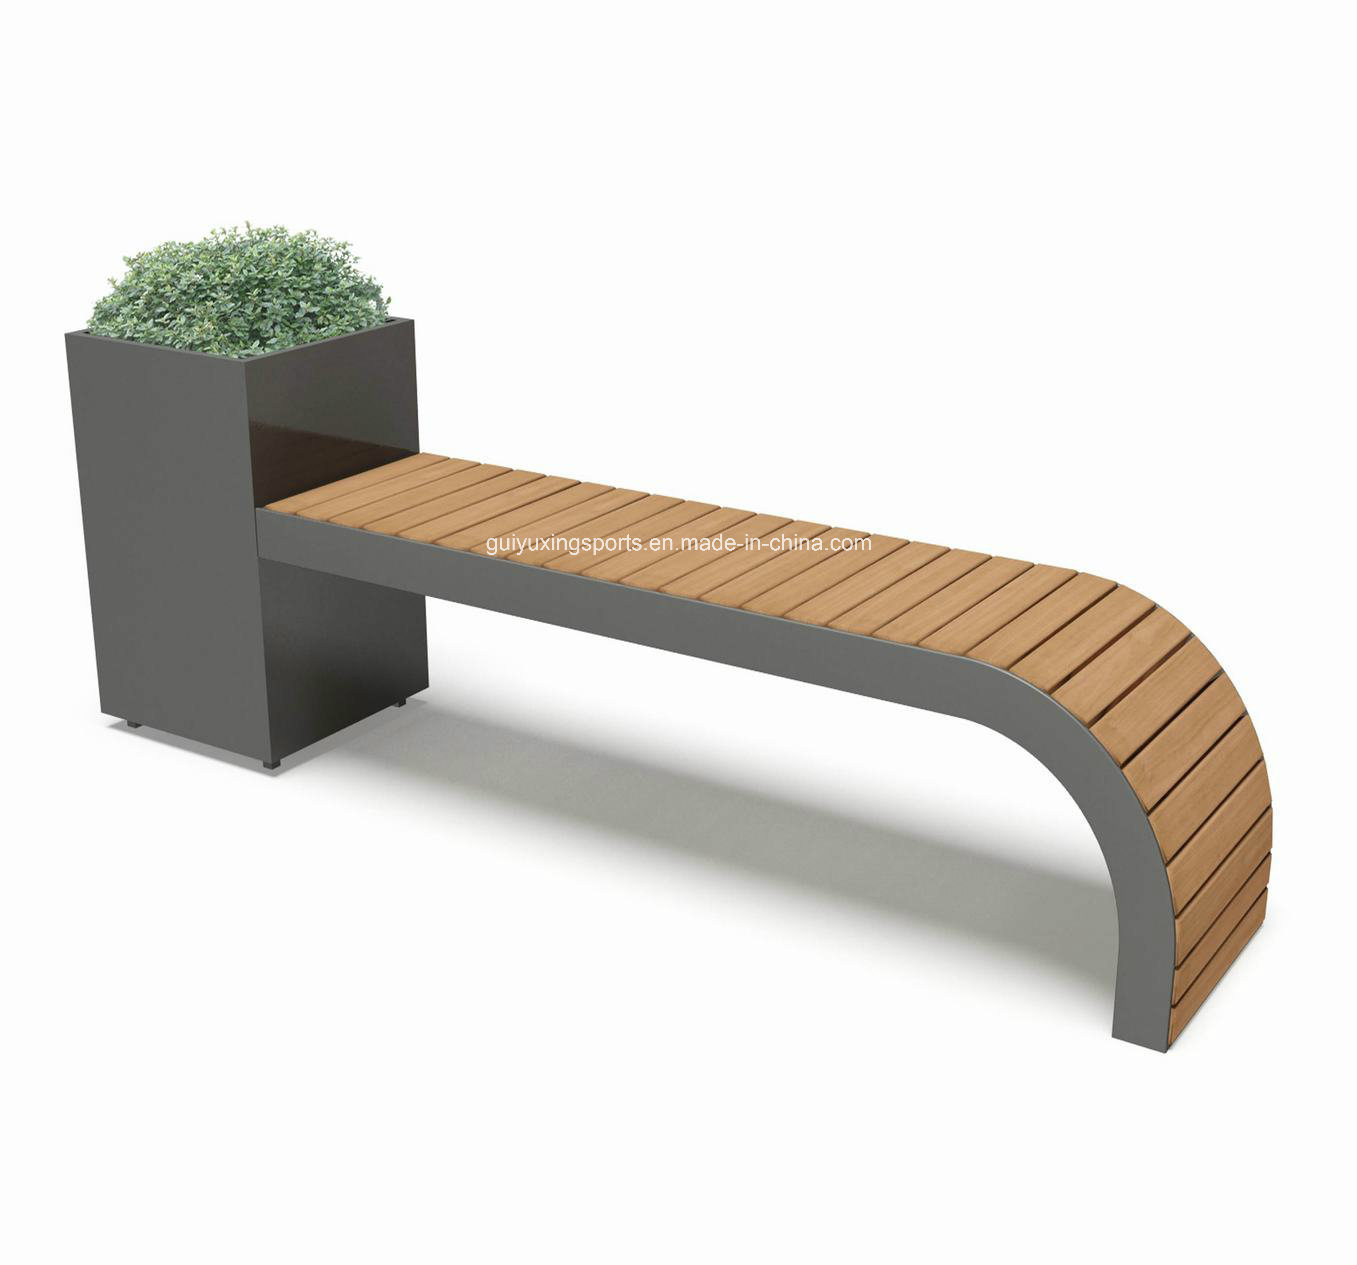 Flower bench flowers ideas for review for Flower bench ideas